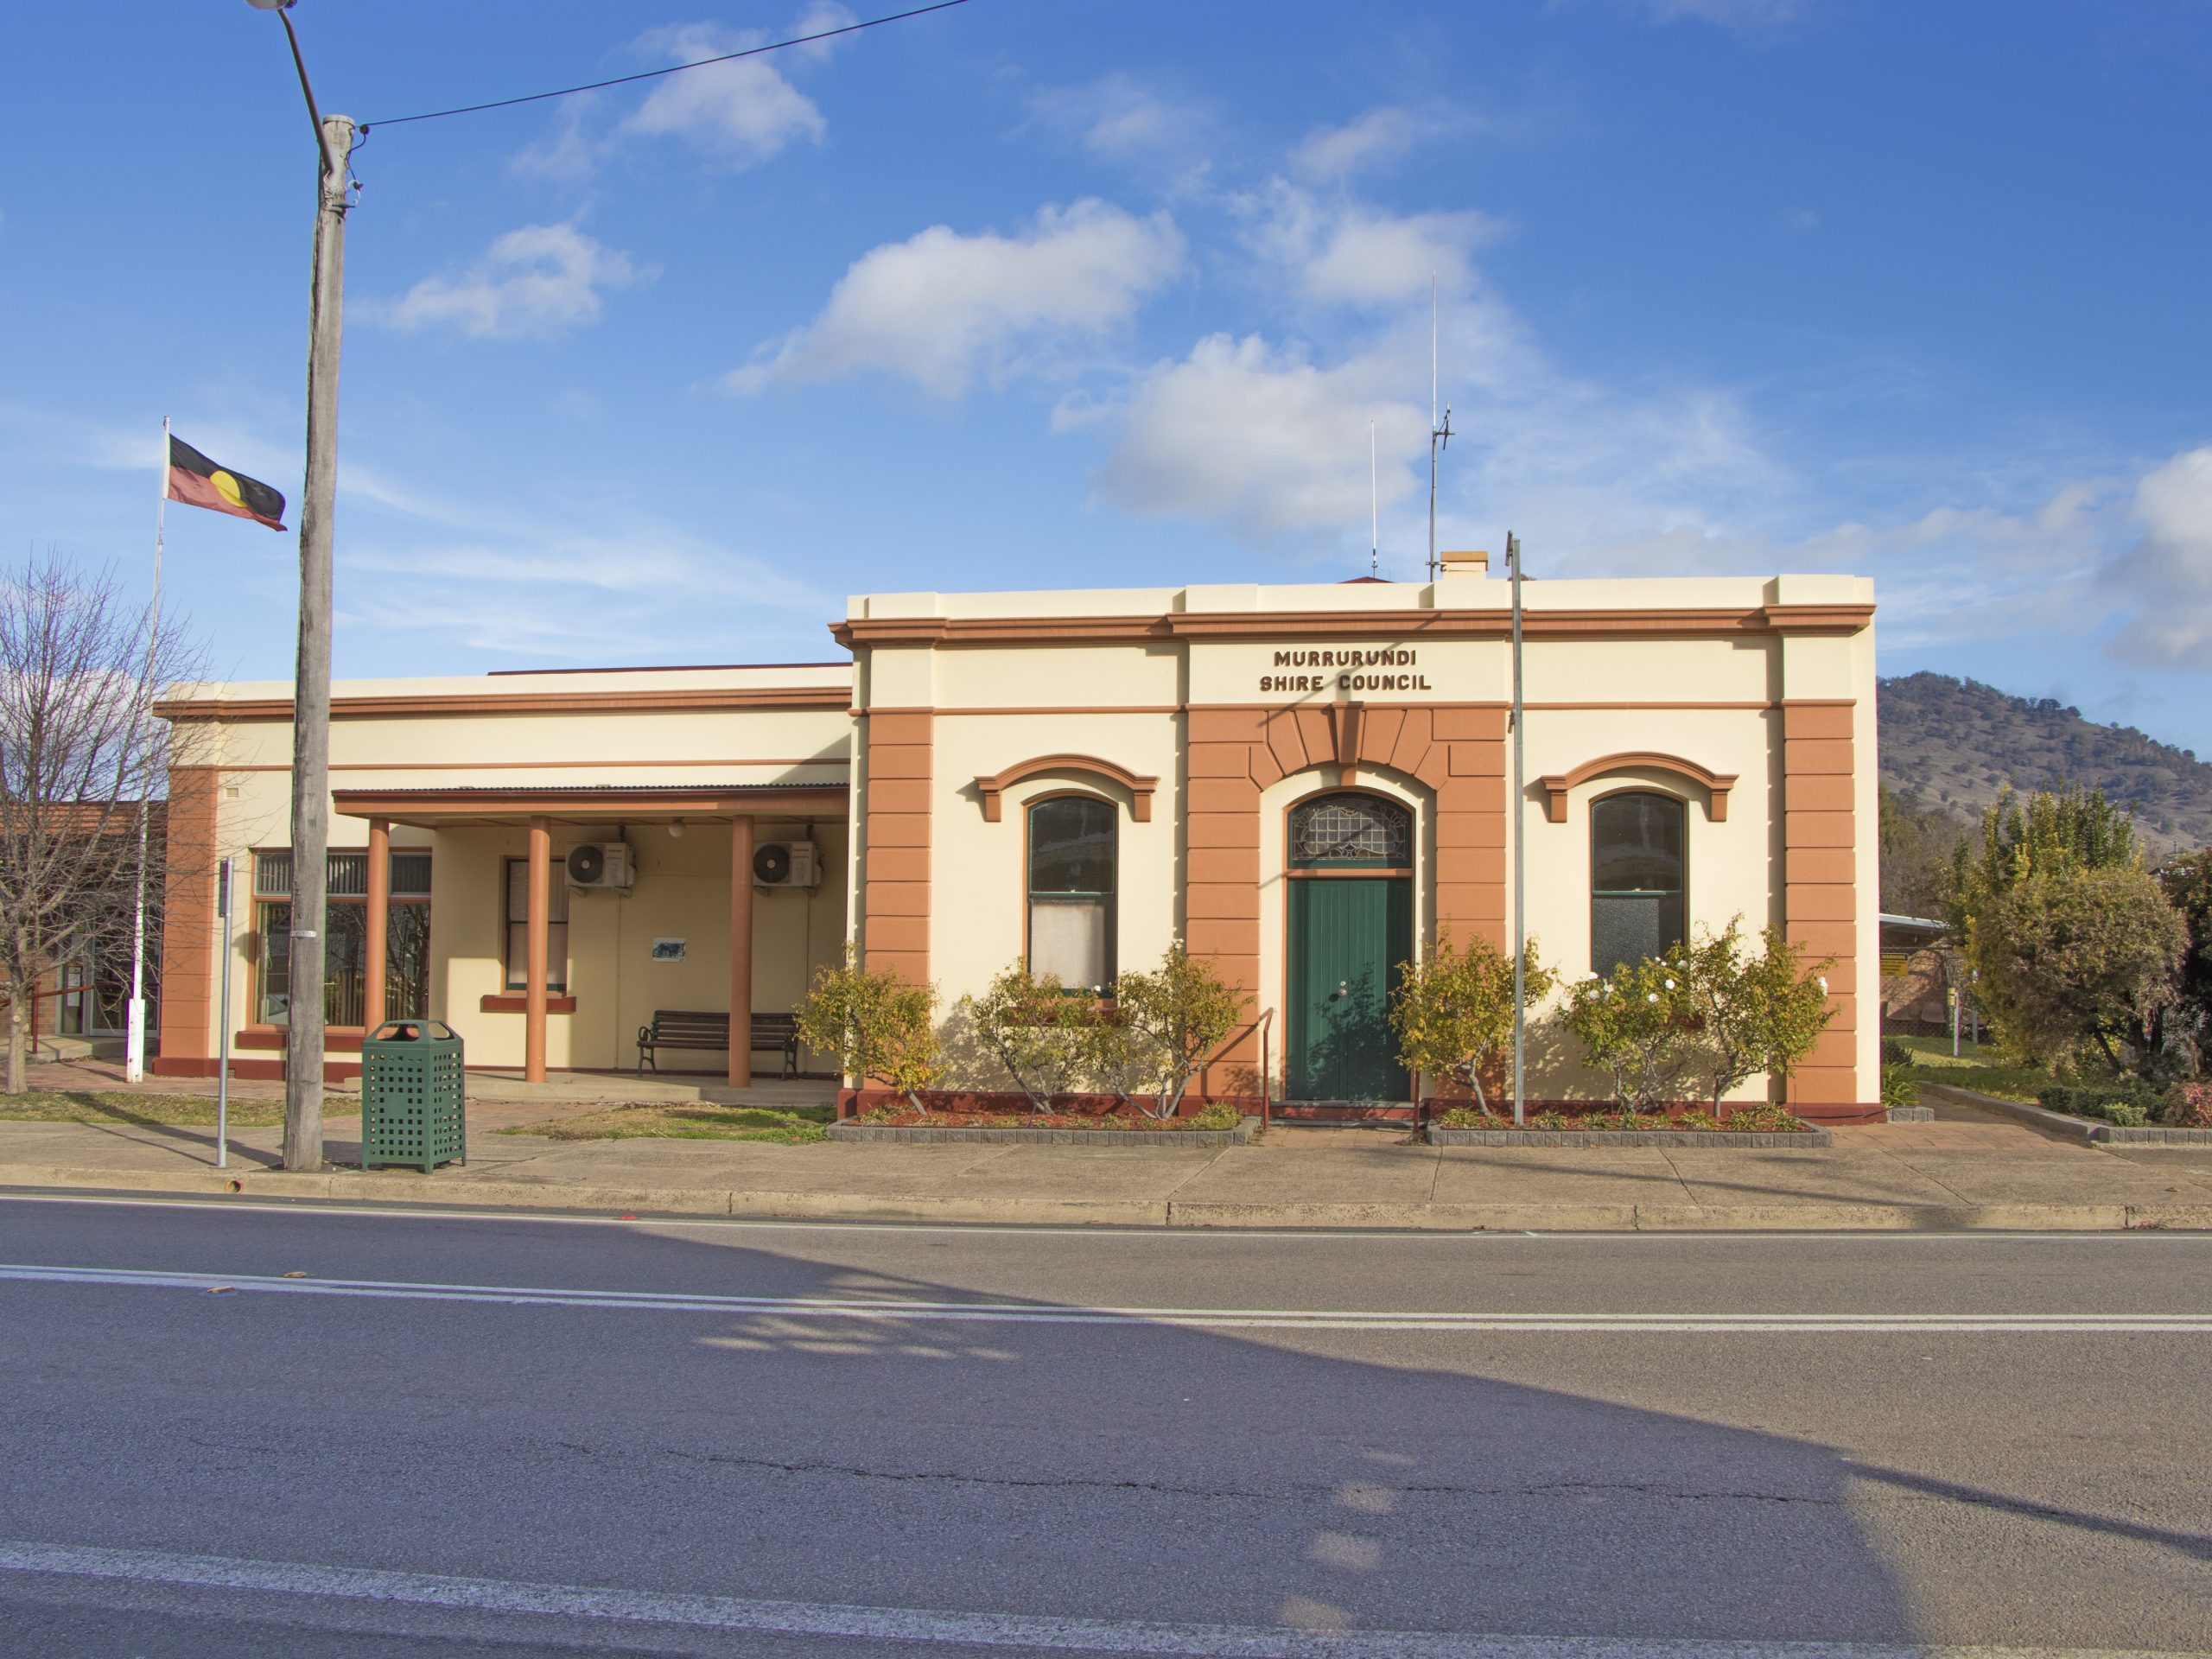 Murrurundi Library